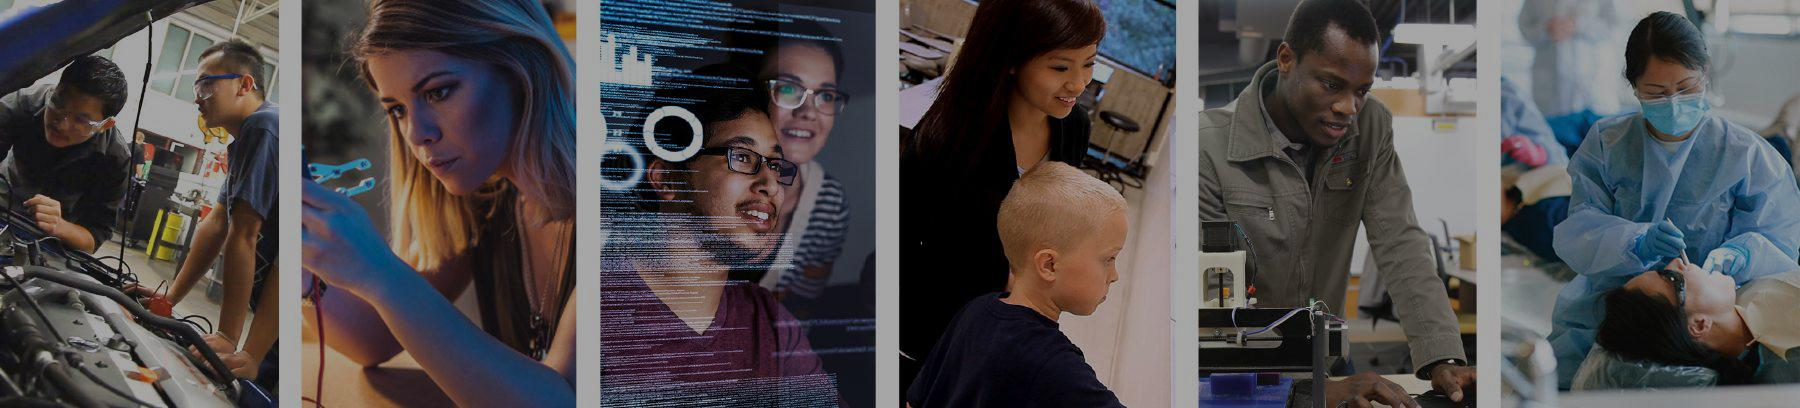 Six images of students learning: students working on a car in an automotive class, a student working in the Fab Lab, an Additive and Digital Manufacturing student, a Dental Hygiene student, Big Data students, and an Education student teaching.